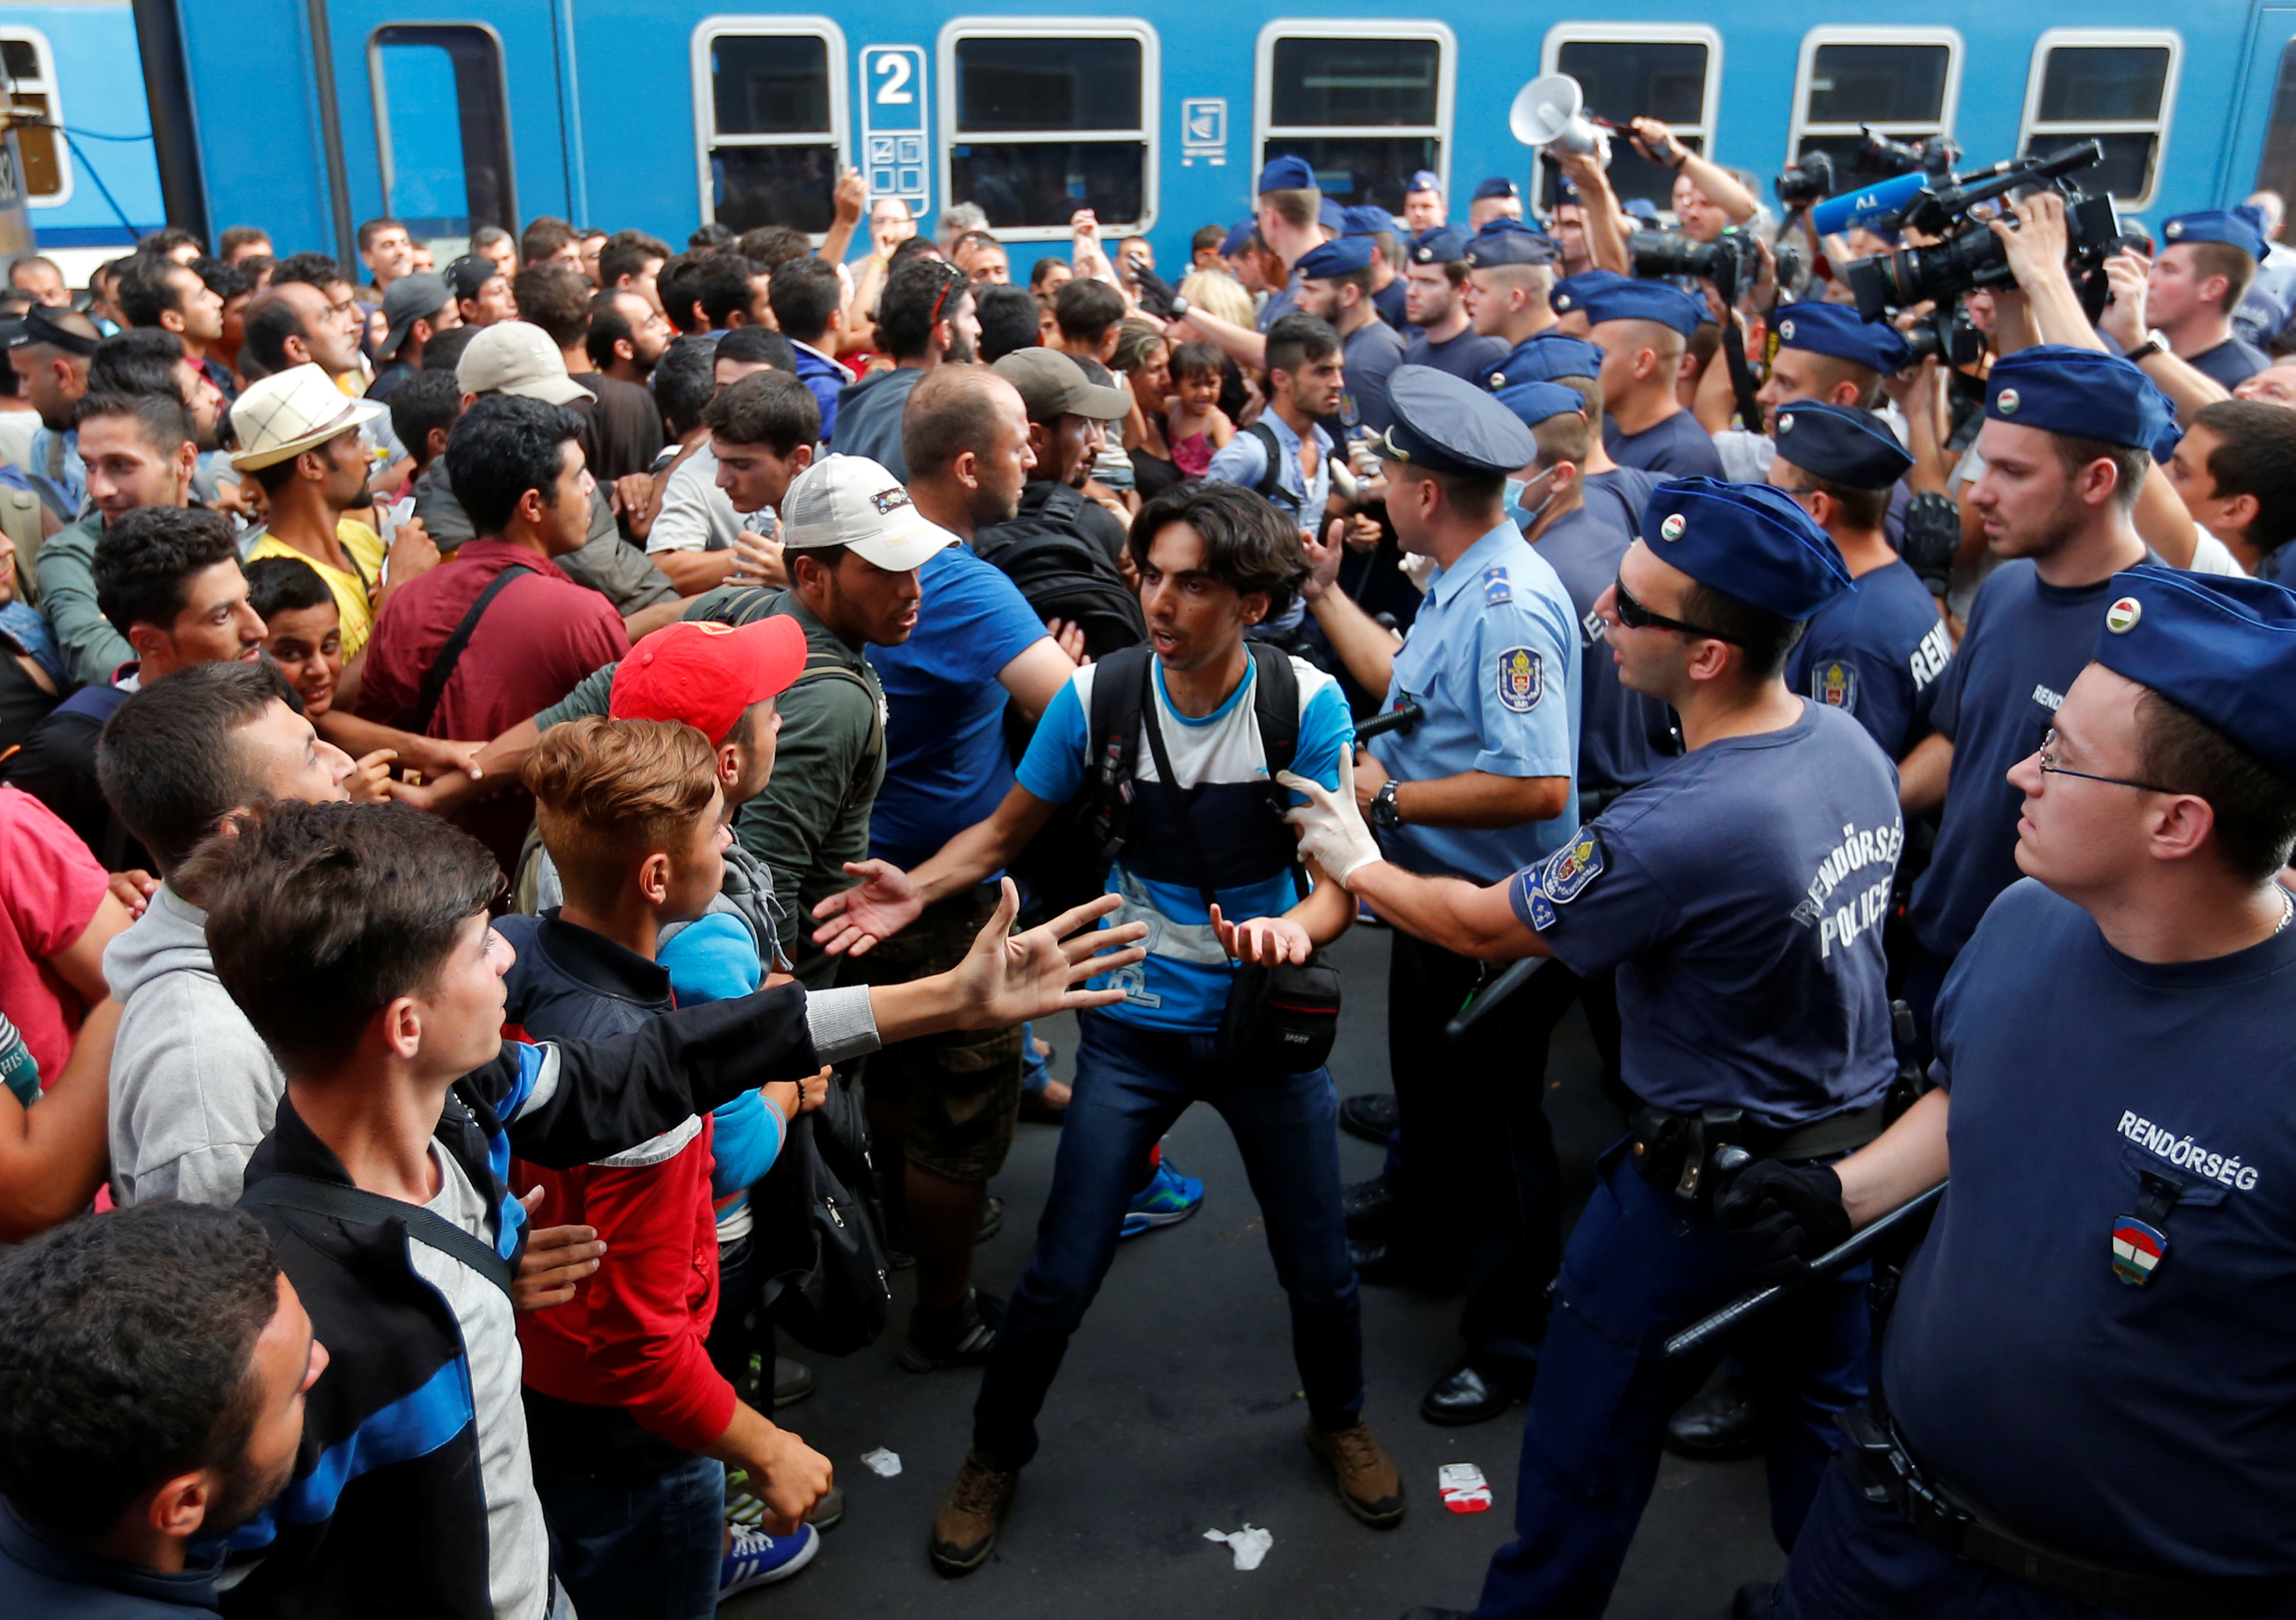 FILE PHOTO: Migrants face Hungarian police in the main Eastern Railway station in Budapest, Hungary, September 1, 2015. REUTE/Laszlo Balogh/File Photo